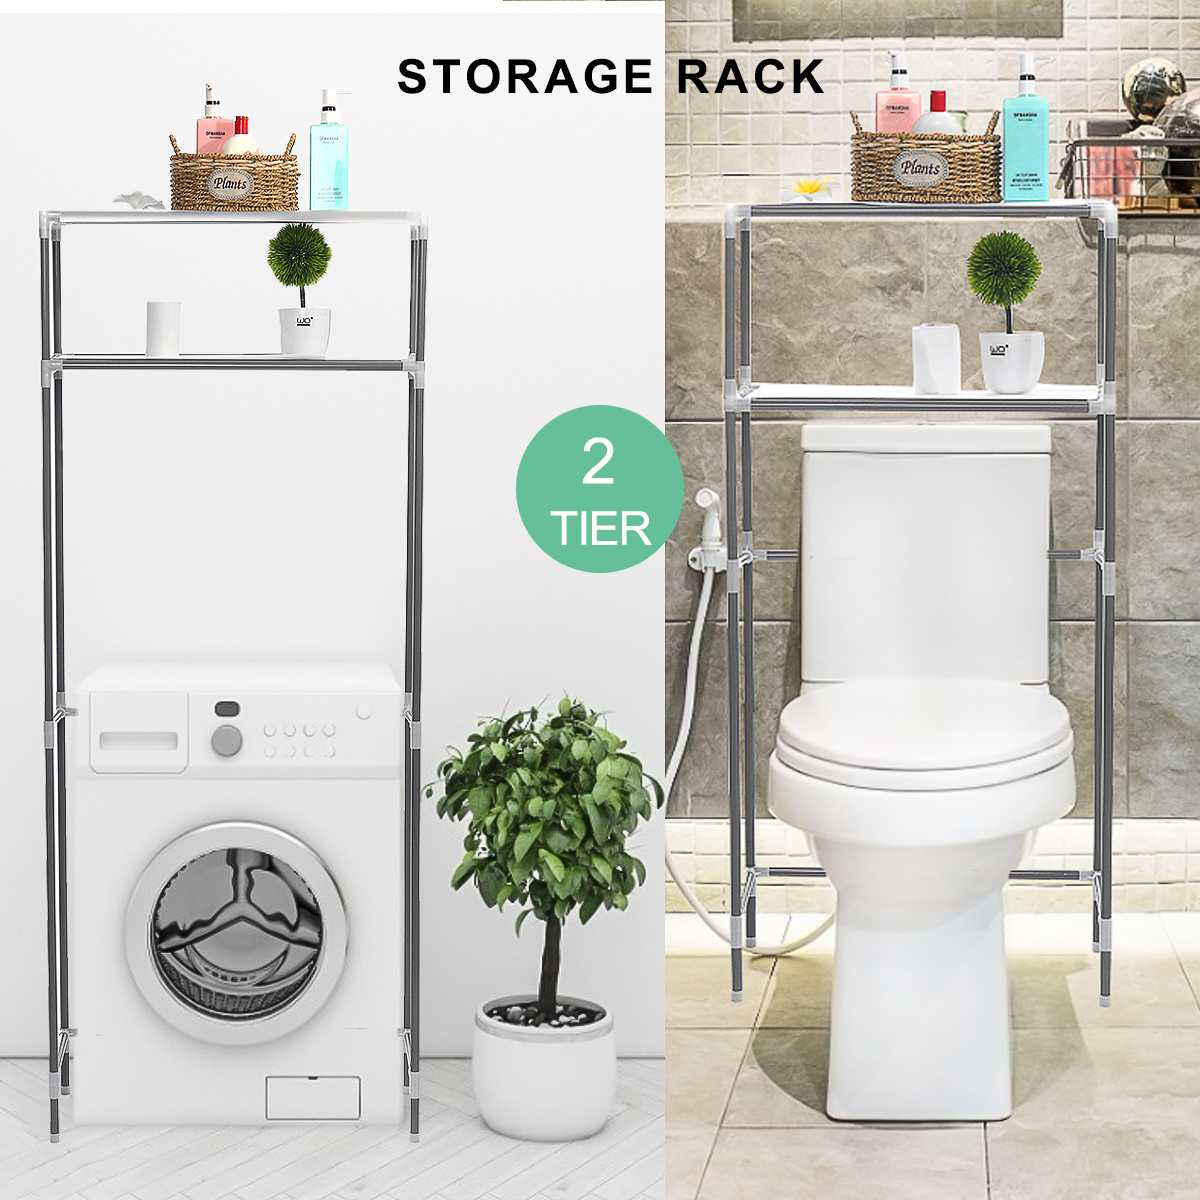 US $18.35 46% OFF|Over The Rack Stainless Steel Toilet Cabinet Shelving  Kitchen Washing Machine Rack Bathroom Space Saver Shelf Organizer Holder on  ...